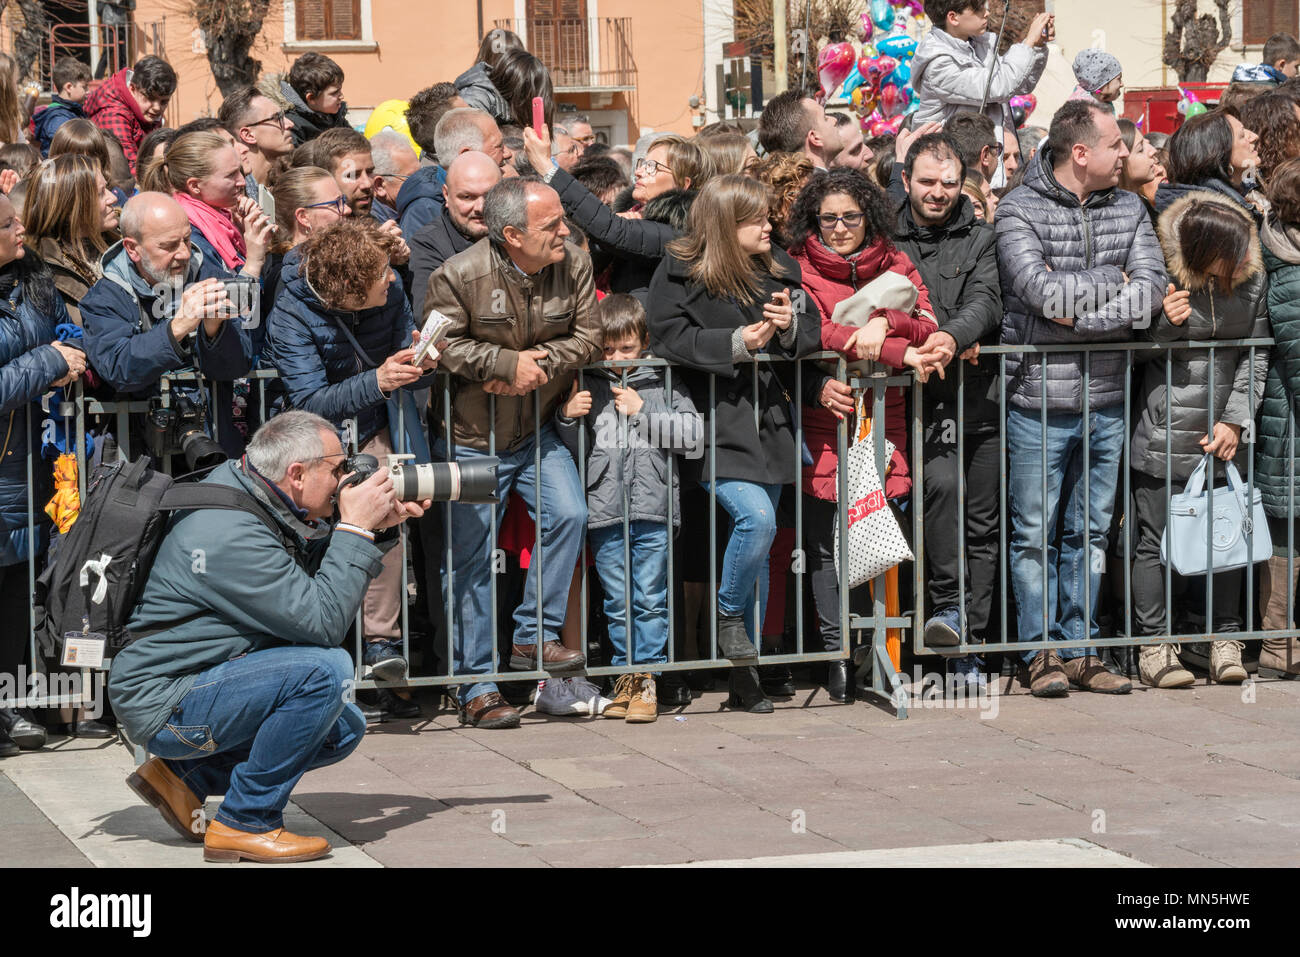 Onlookers, photographer, at Madonna che Scappa celebration on Easter Sunday at Piazza Garibaldi in Sulmona, Abruzzo, Italy - Stock Image